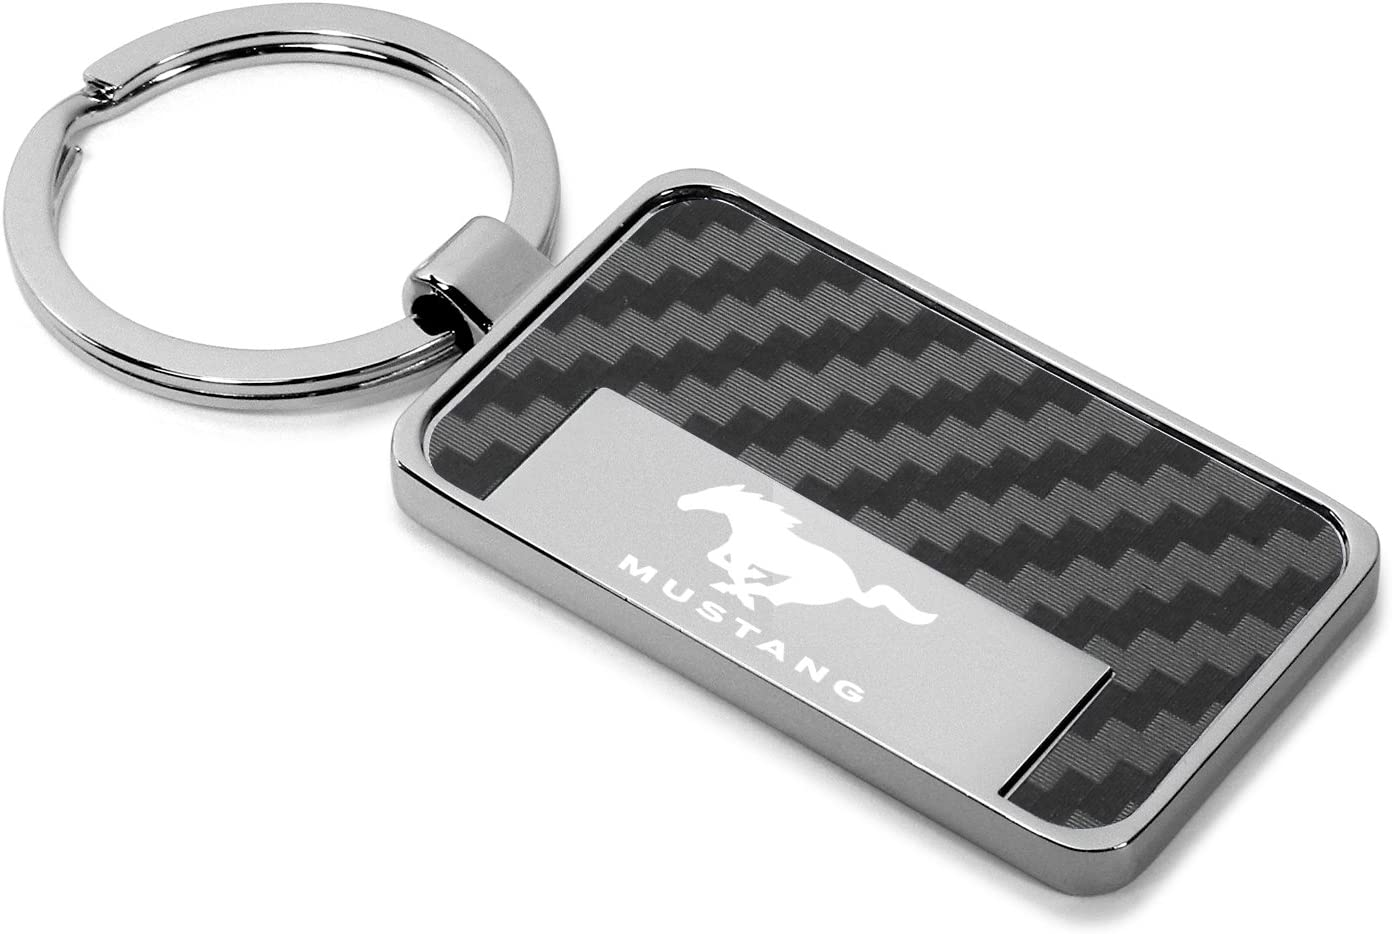 Ford Mustang Rectangle Black Carbon Fiber Vinyl Inlay Key Chain License Frame Inc